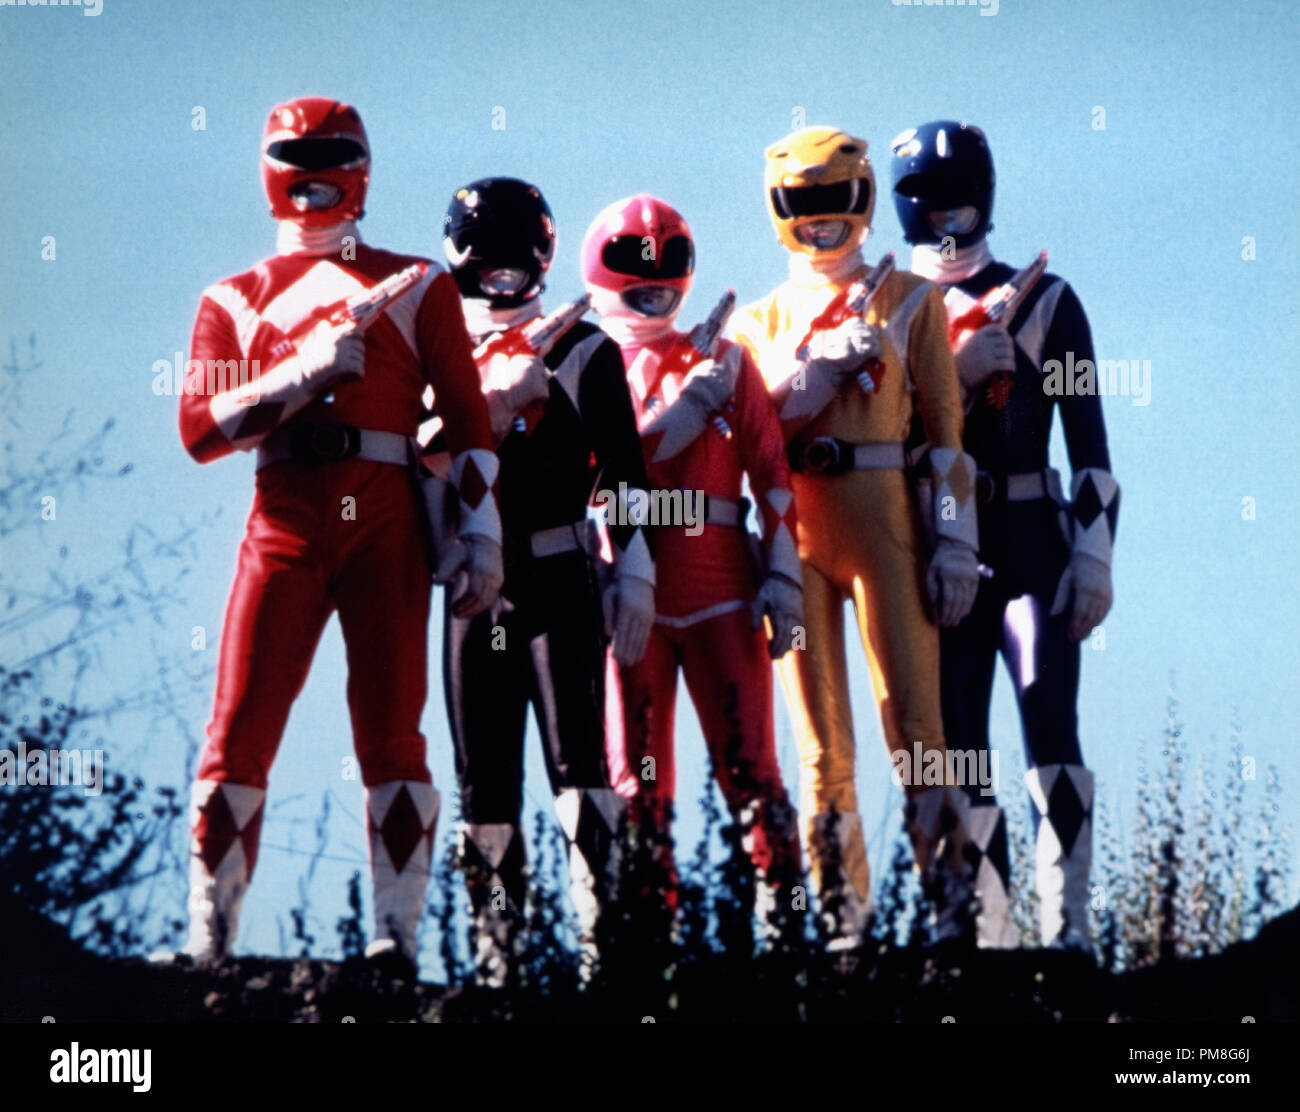 Film still / publicity still from 'Mighty Morphin' Power Rangers' circa 1993   File Reference # 31371222THA  For Editorial Use Only All Rights Reserved - Stock Image